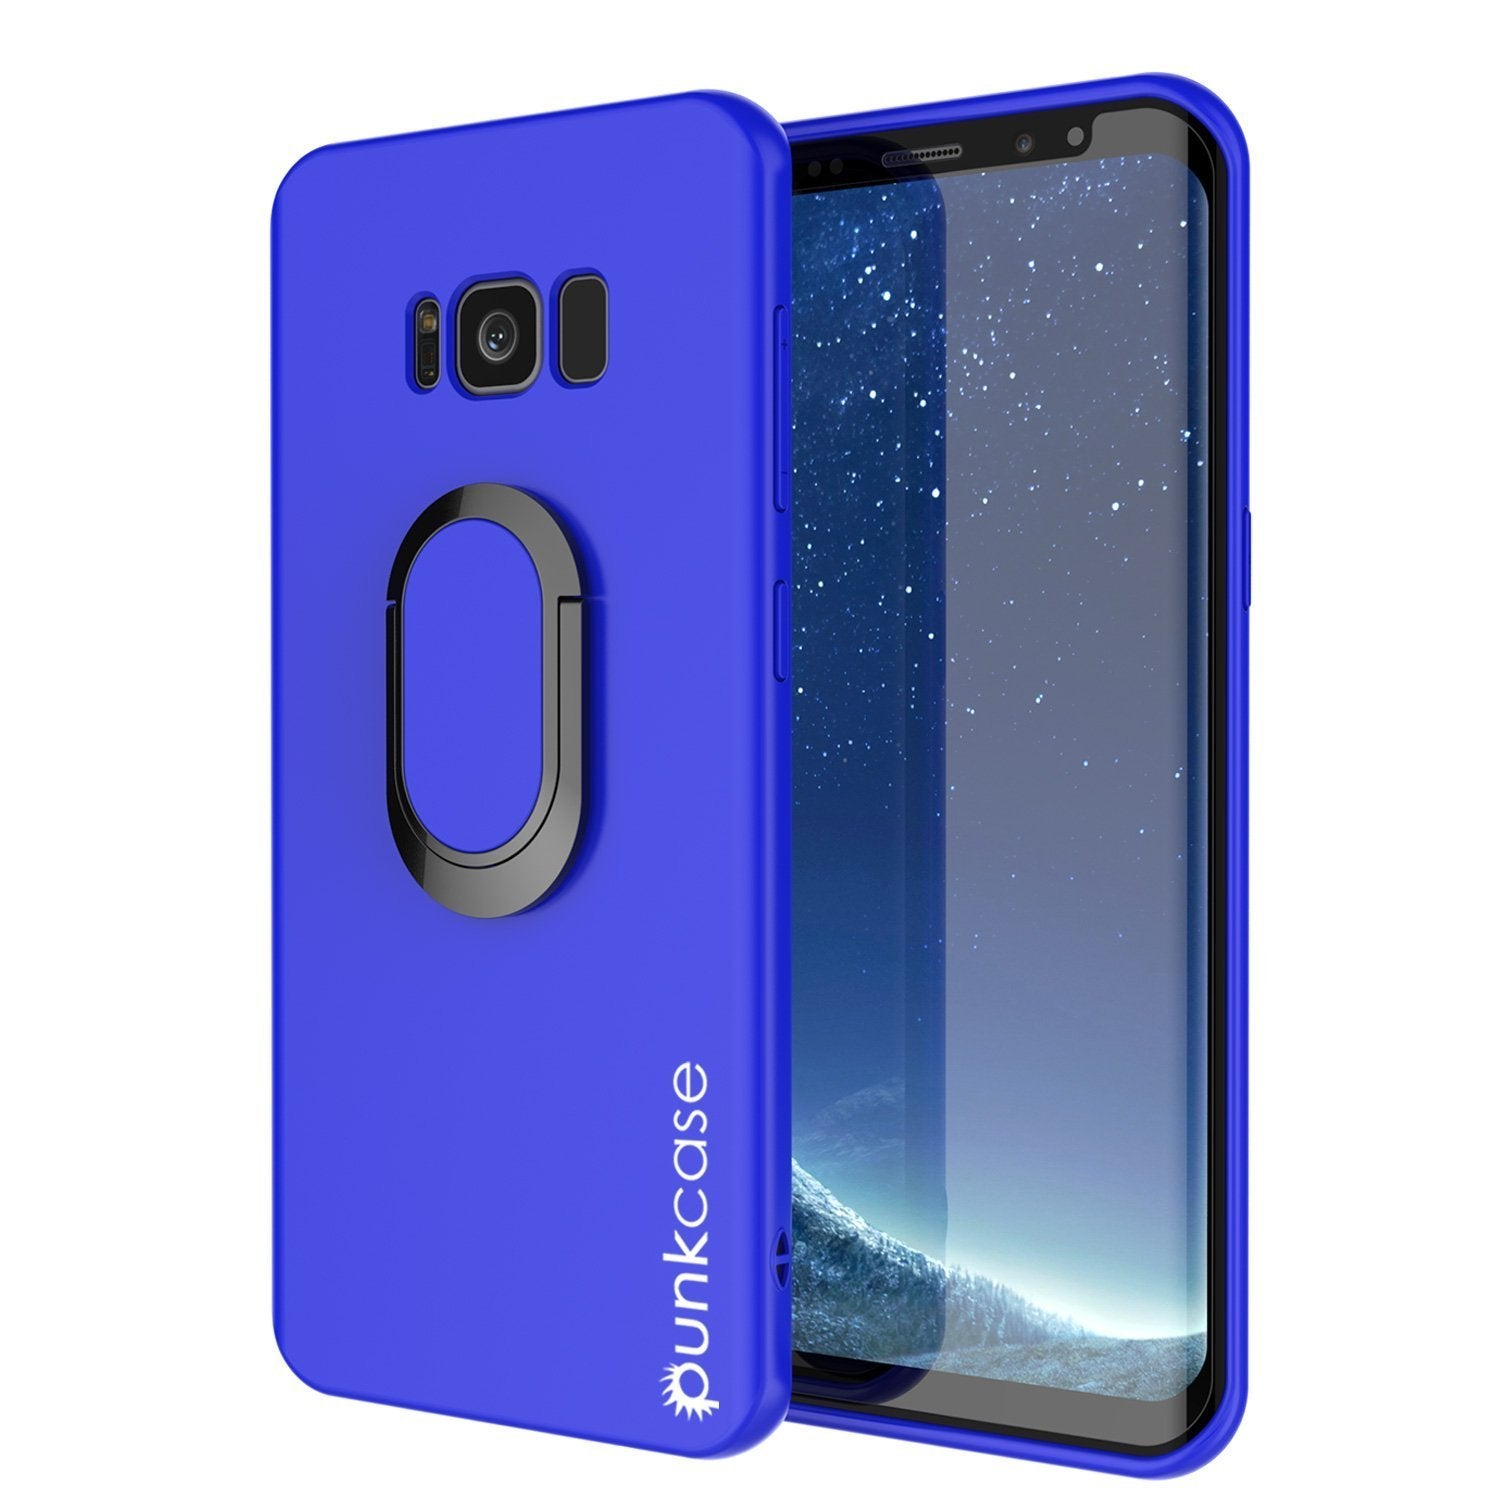 Galaxy S8 PLUS, Punkcase Magnetix Protective TPU Cover W/ Kickstand, Screen Protector [Blue]